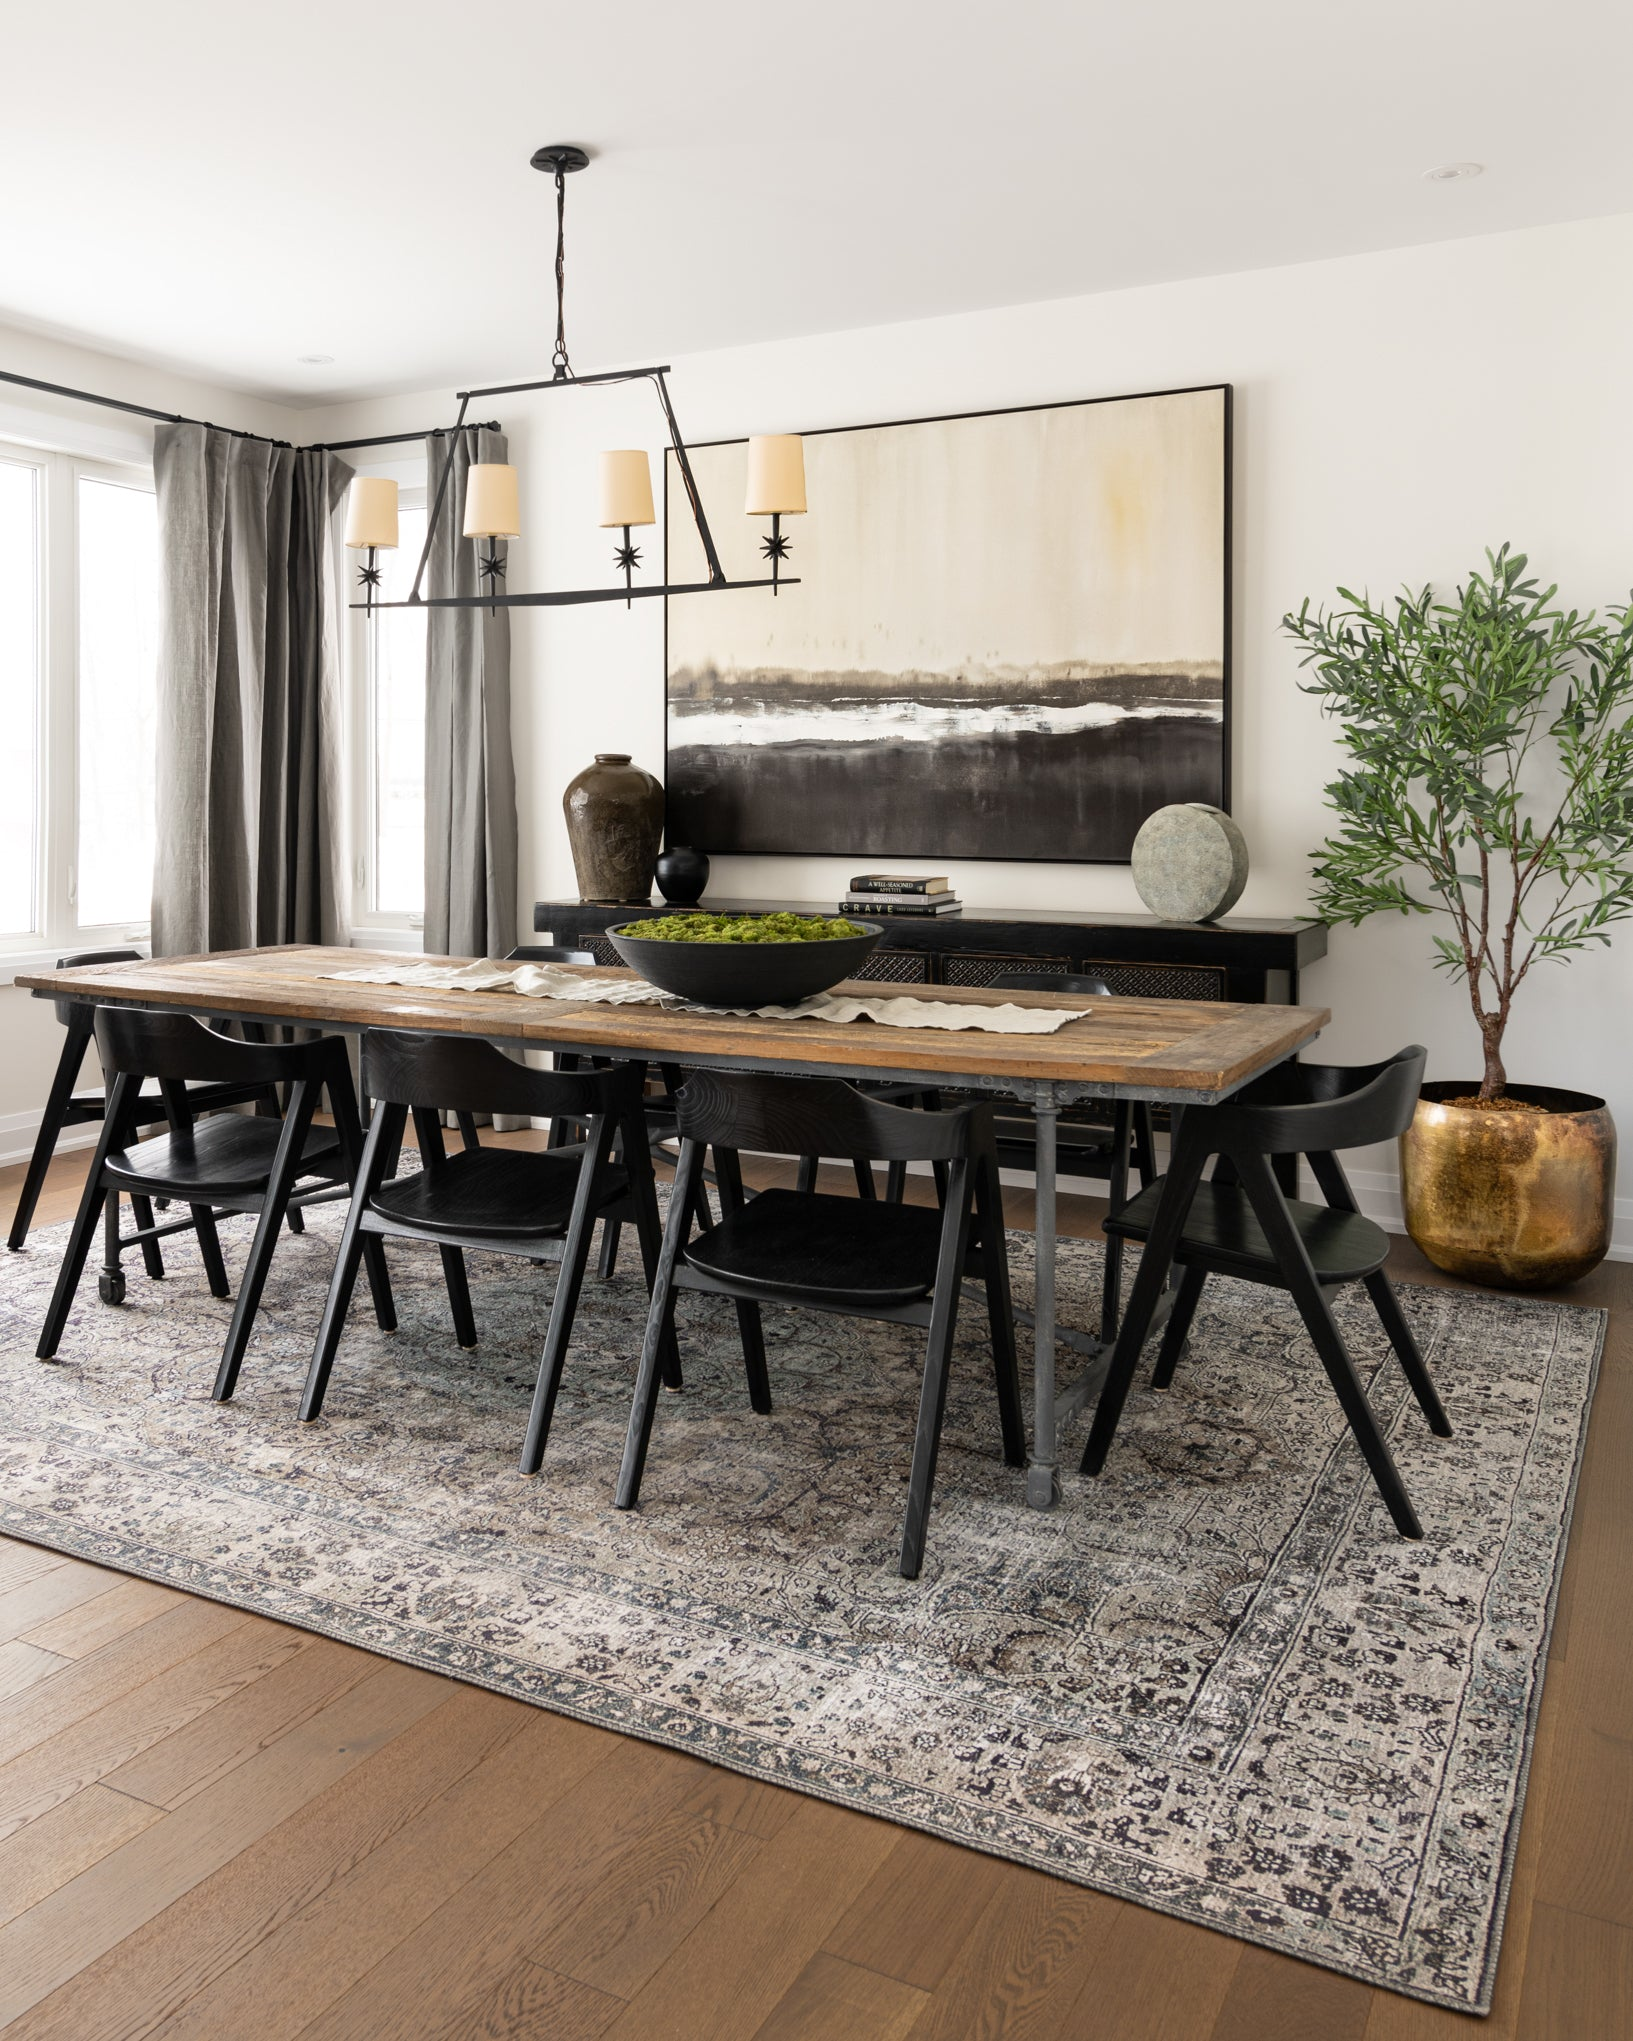 Dining-room-with-large-industrial-table.